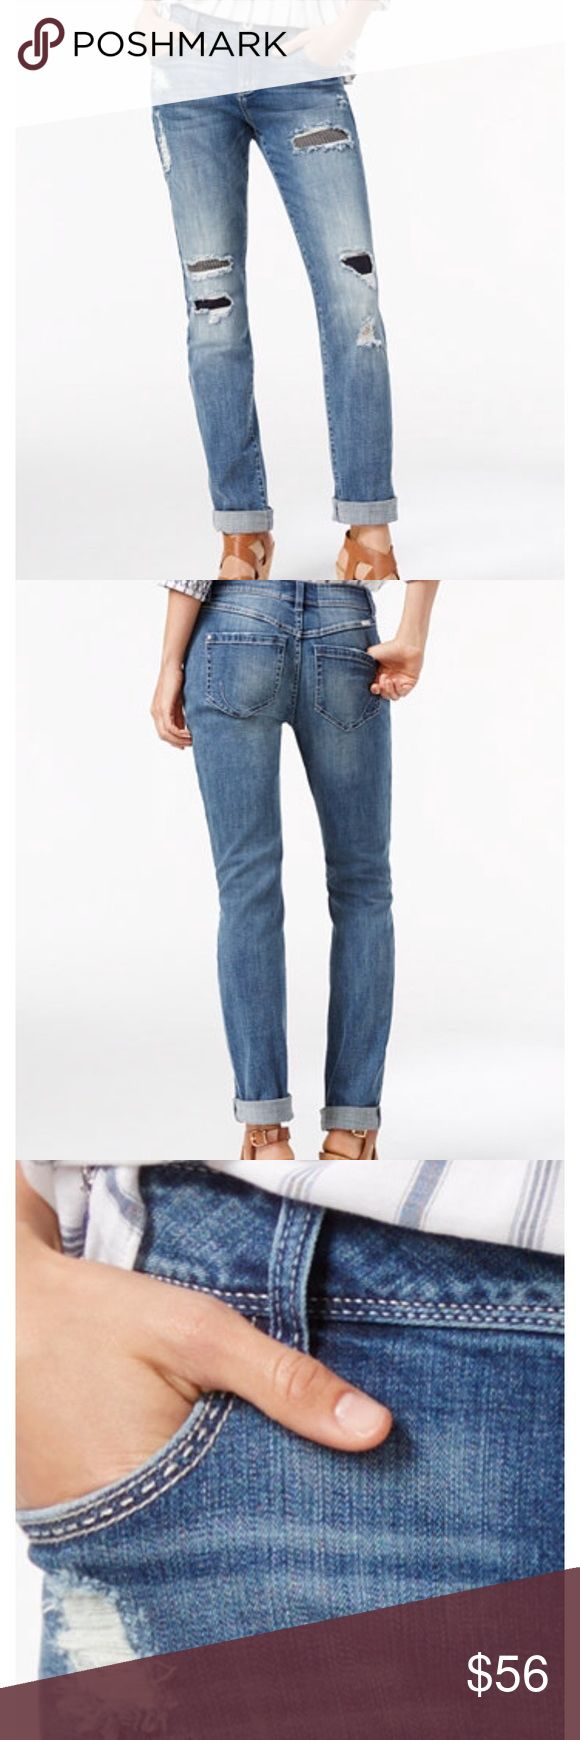 """INC Boyfriend Jeans Mid rise, straight leg jeans that can be cuffed. Cotton/spandex with 32"""" inseam. Rips backed with patches.[RN.S  ].🚫Trades. INC International Concepts Jeans Boyfriend"""